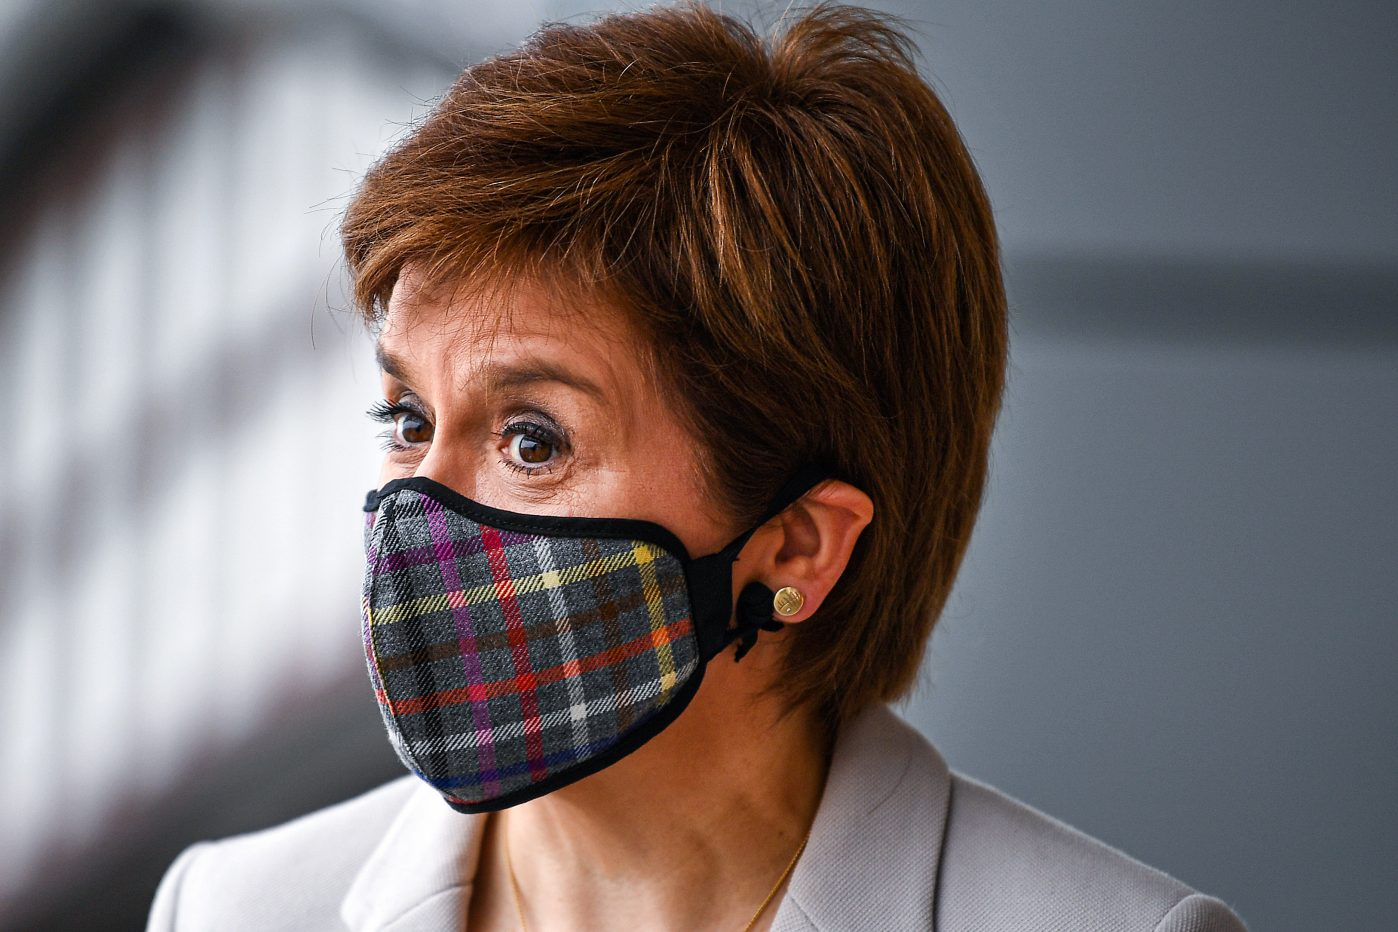 Scotland introduces tighter rules on face coverings